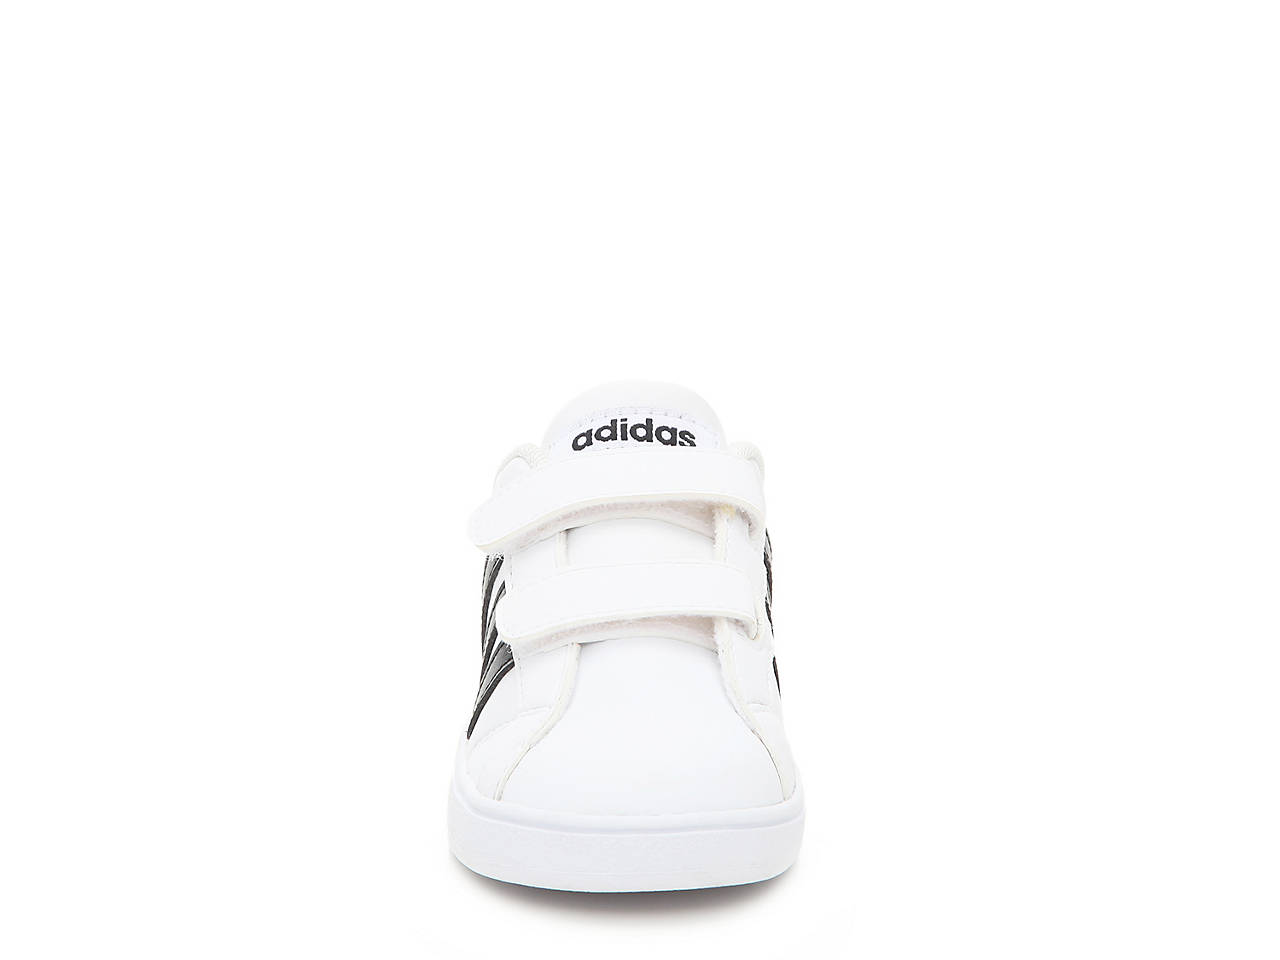 3f2f50b387 Home · Boys' Shoes · Sneakers; Baseline Infant & Toddler Sneaker. previous